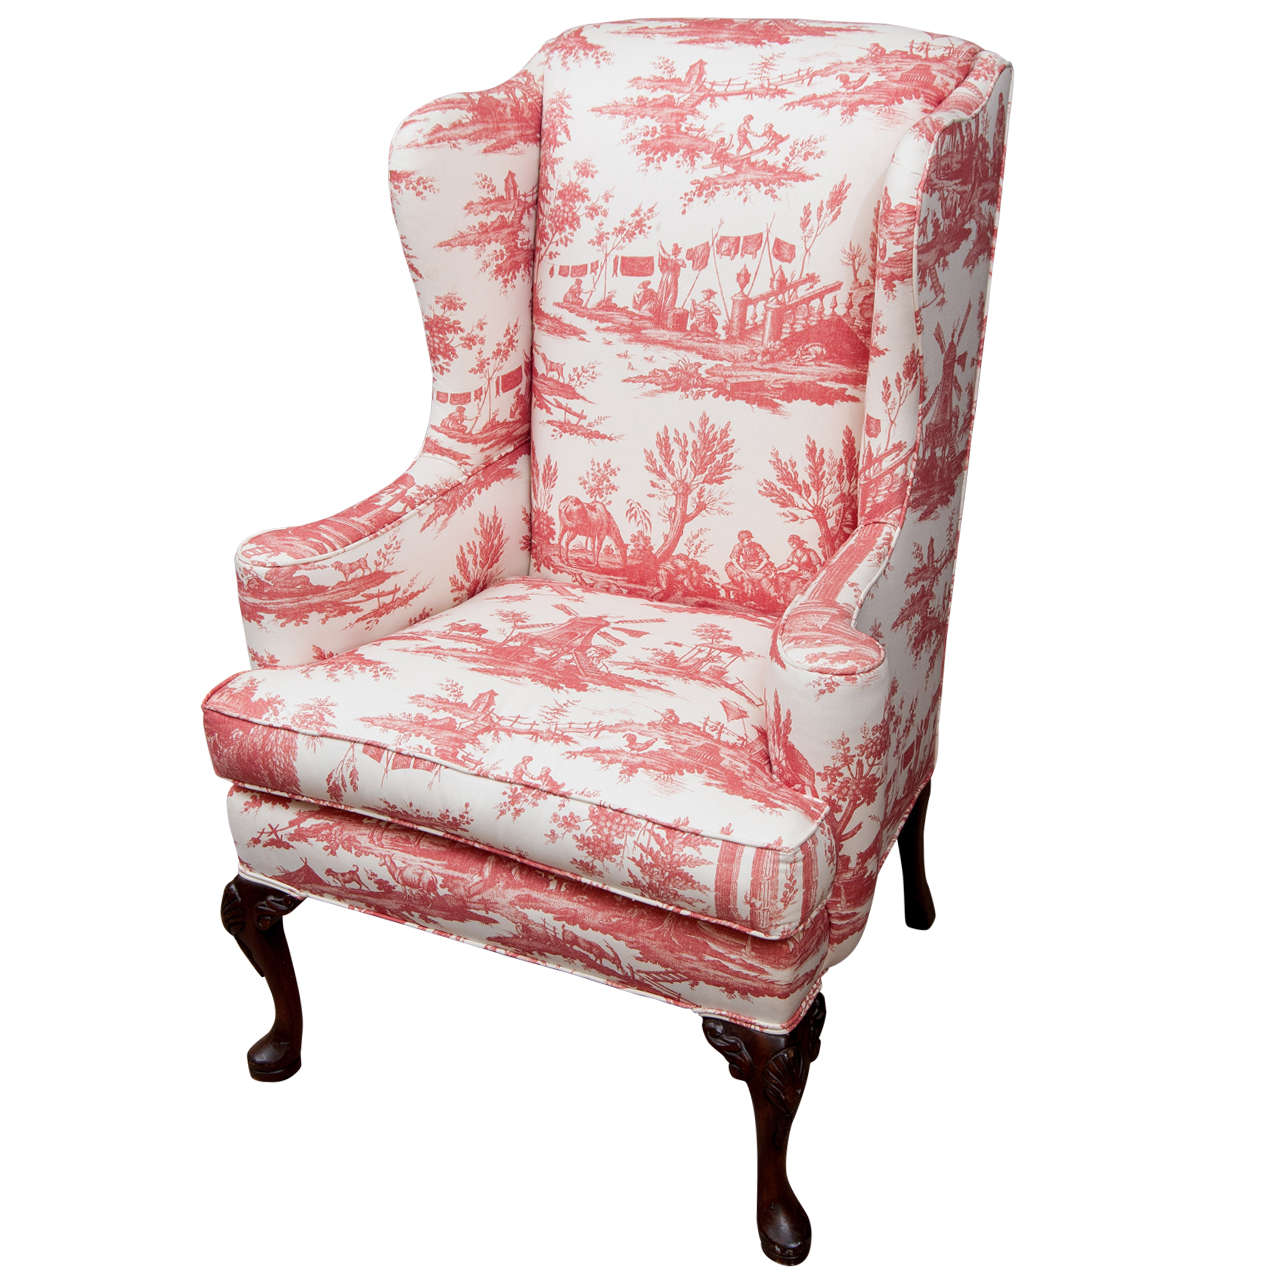 Lovely Queen Anne Chair And The Antique Sense Of It #3288 | Furniture Ideas TJ92